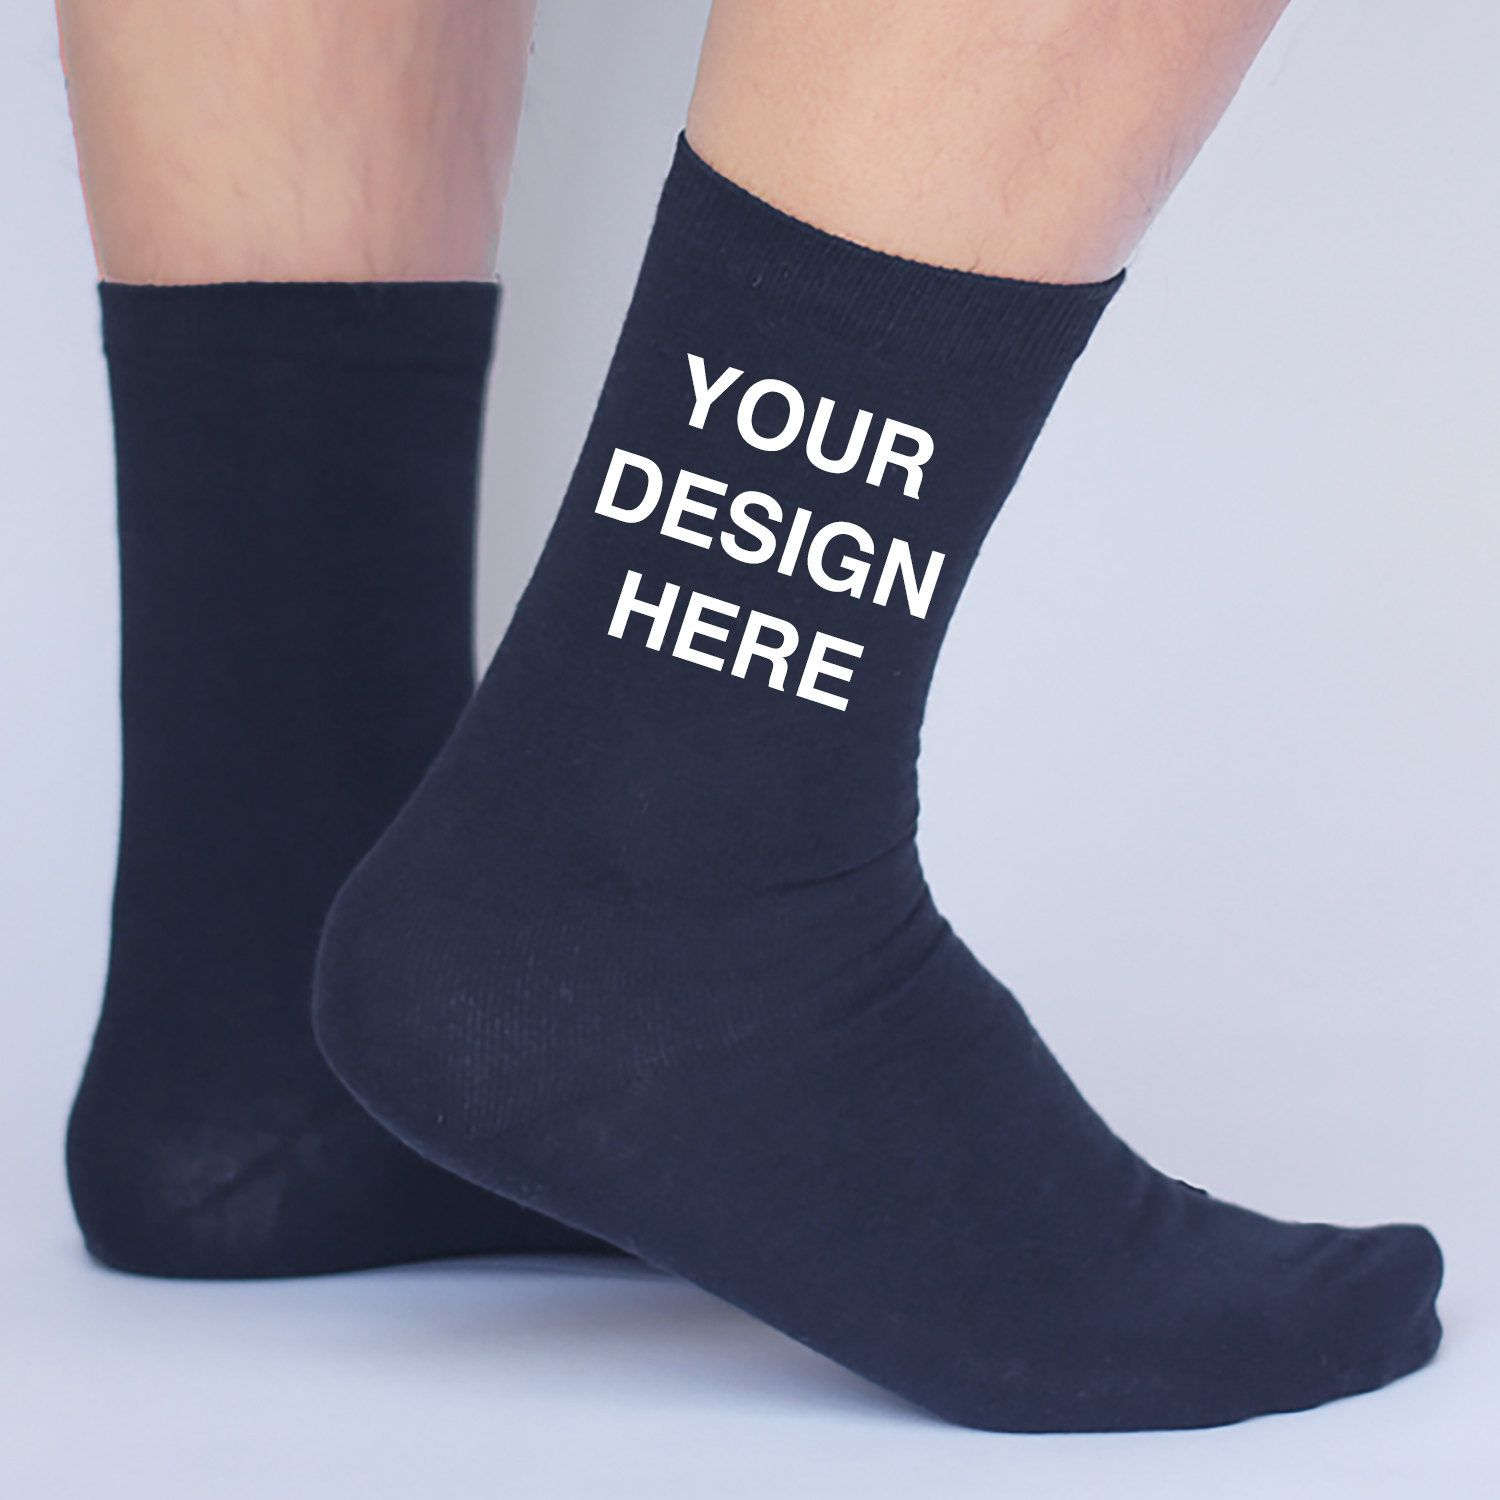 Custom Printed And Personalized Mens Dress Socks Socks For Him Etsy Mens Dress Socks Custom Printed Socks Custom Socks Design [ 1500 x 1500 Pixel ]